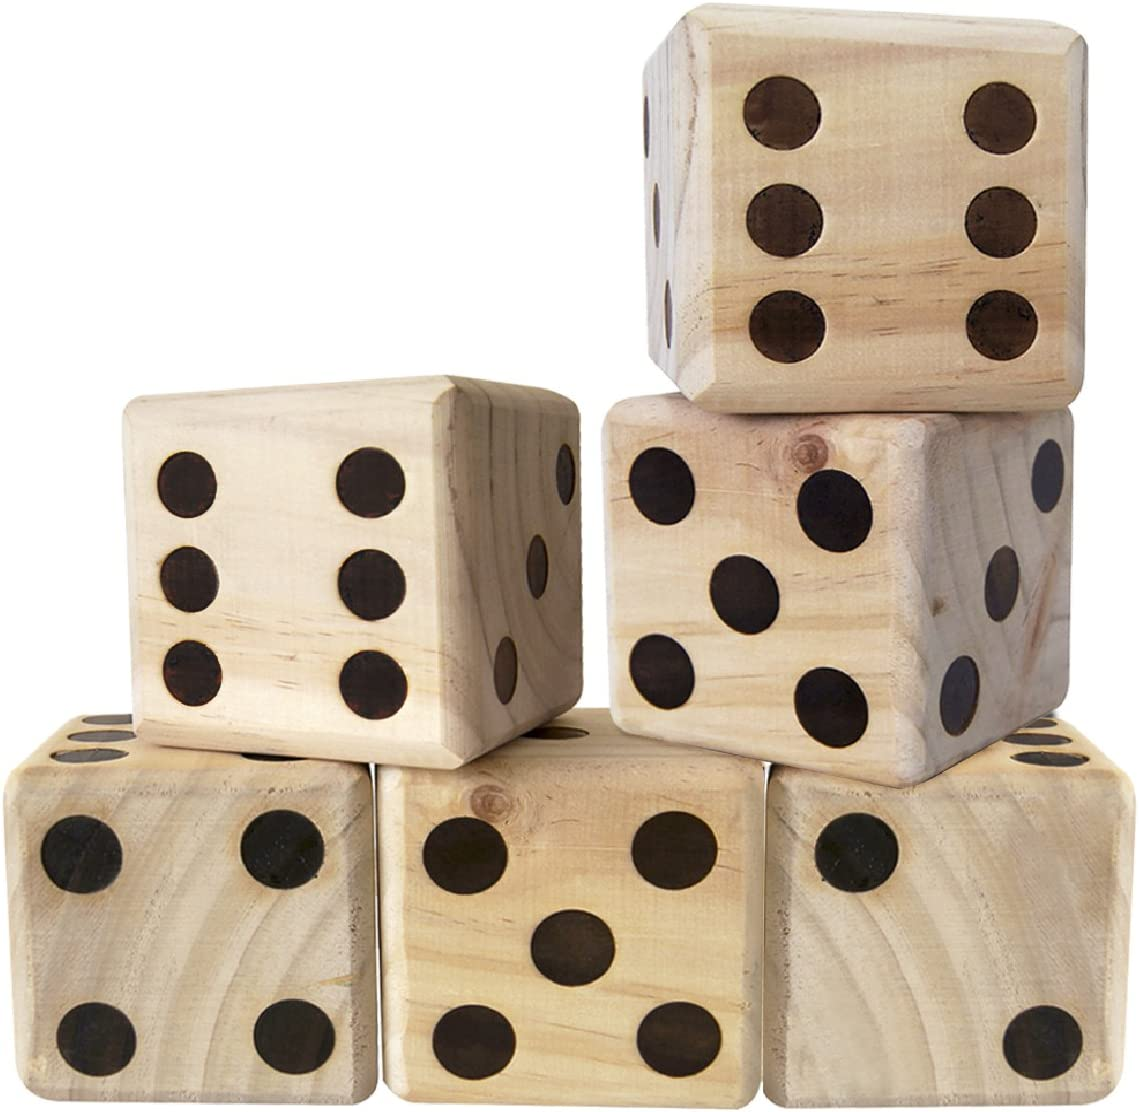 Yencoly Indoor outdoor activities Creative dice dice portable dice games for pool parties for party games green